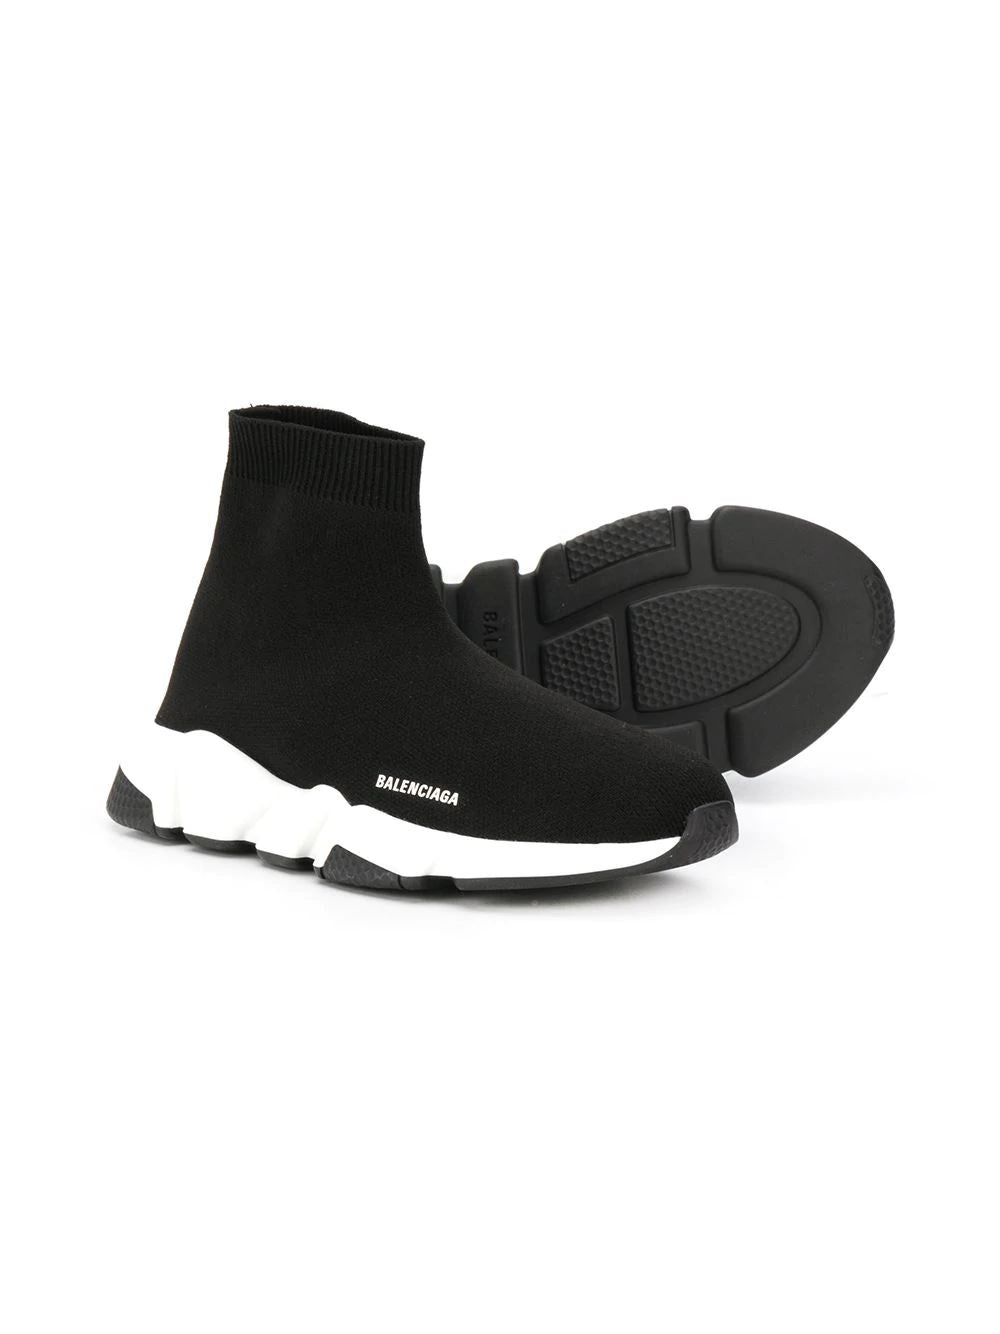 Balenciaga kids speed runner black - Maison De Fashion